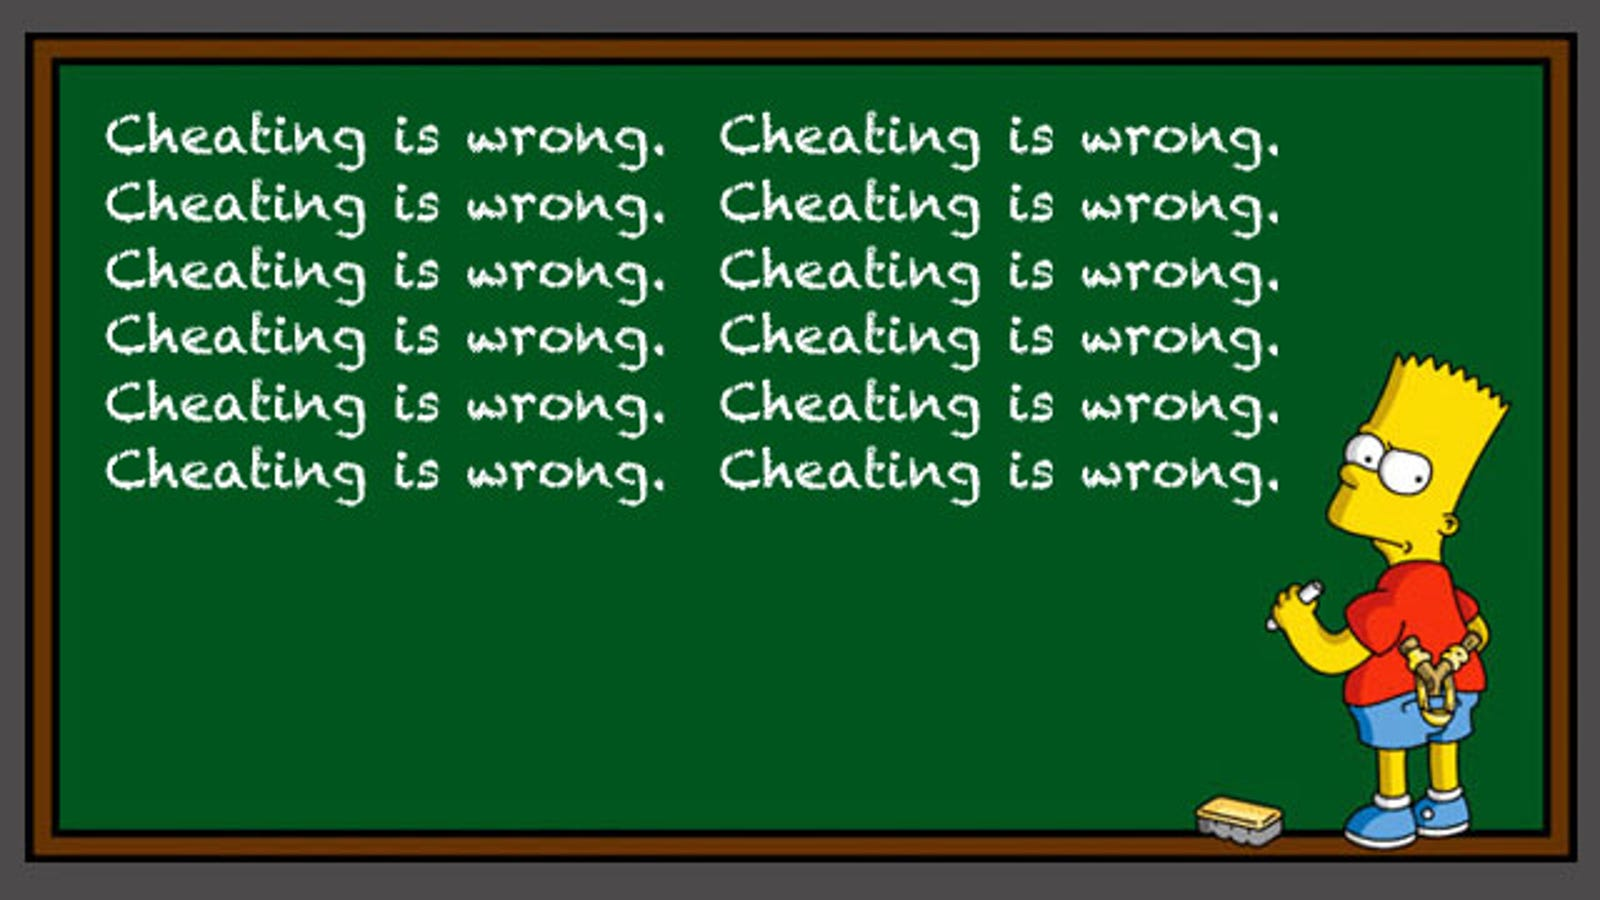 Why cheaters cheat